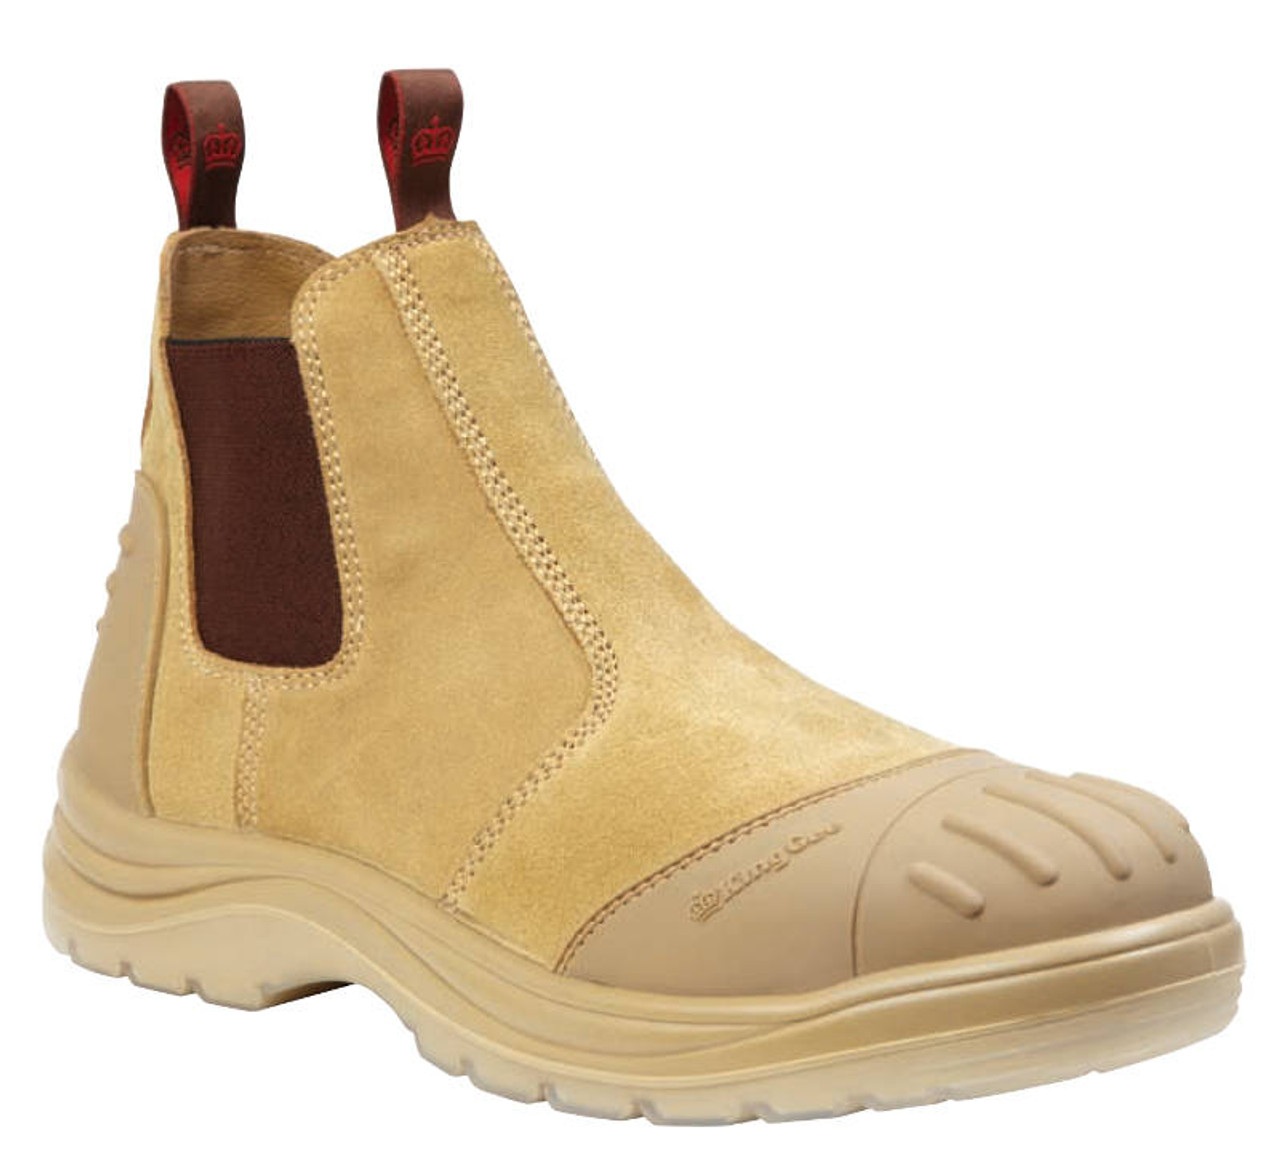 743ba8d7616 KingGee Wills Suede Leather Safety Work Boots - Sand - Koolstuff ...